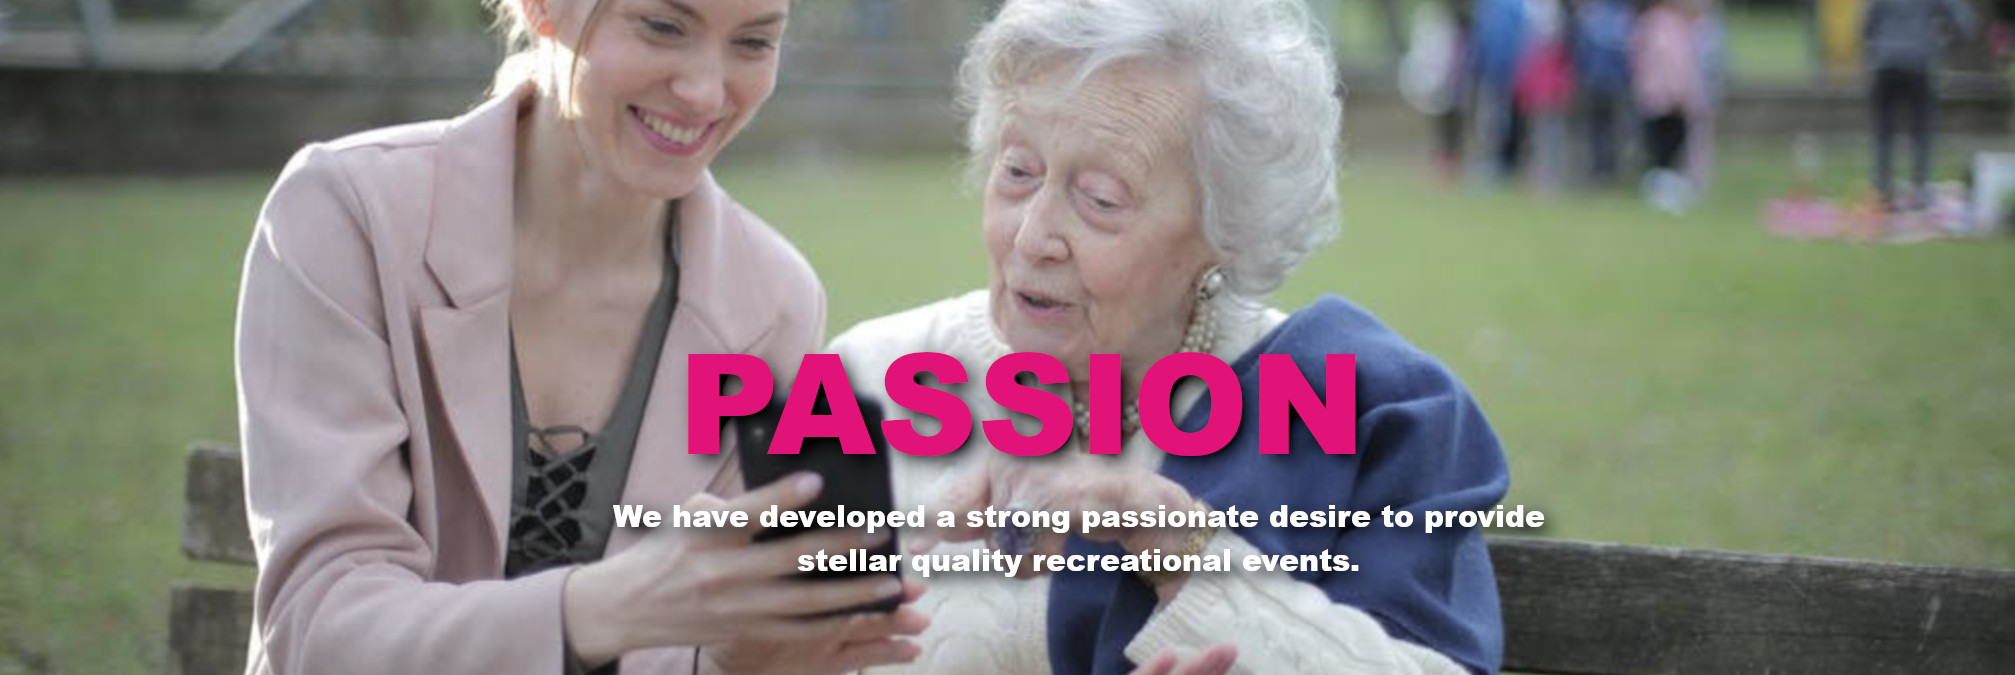 Passion - We have developed a strong passionate desire to provide stellar quality recreational events.